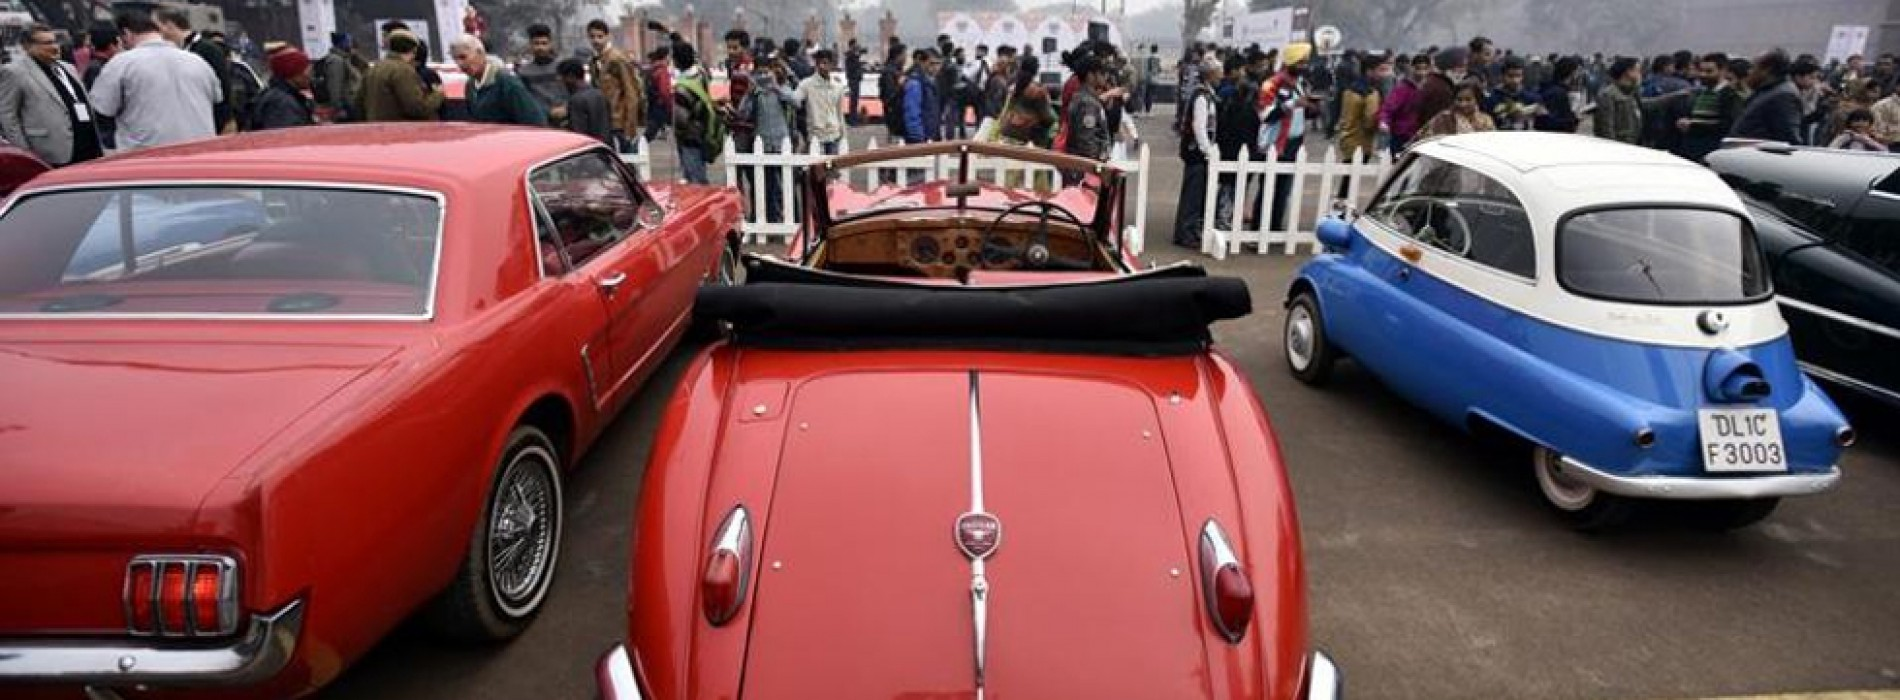 21 Gun Salute Concours Show – spotlight on the future of heritage motoring in India!